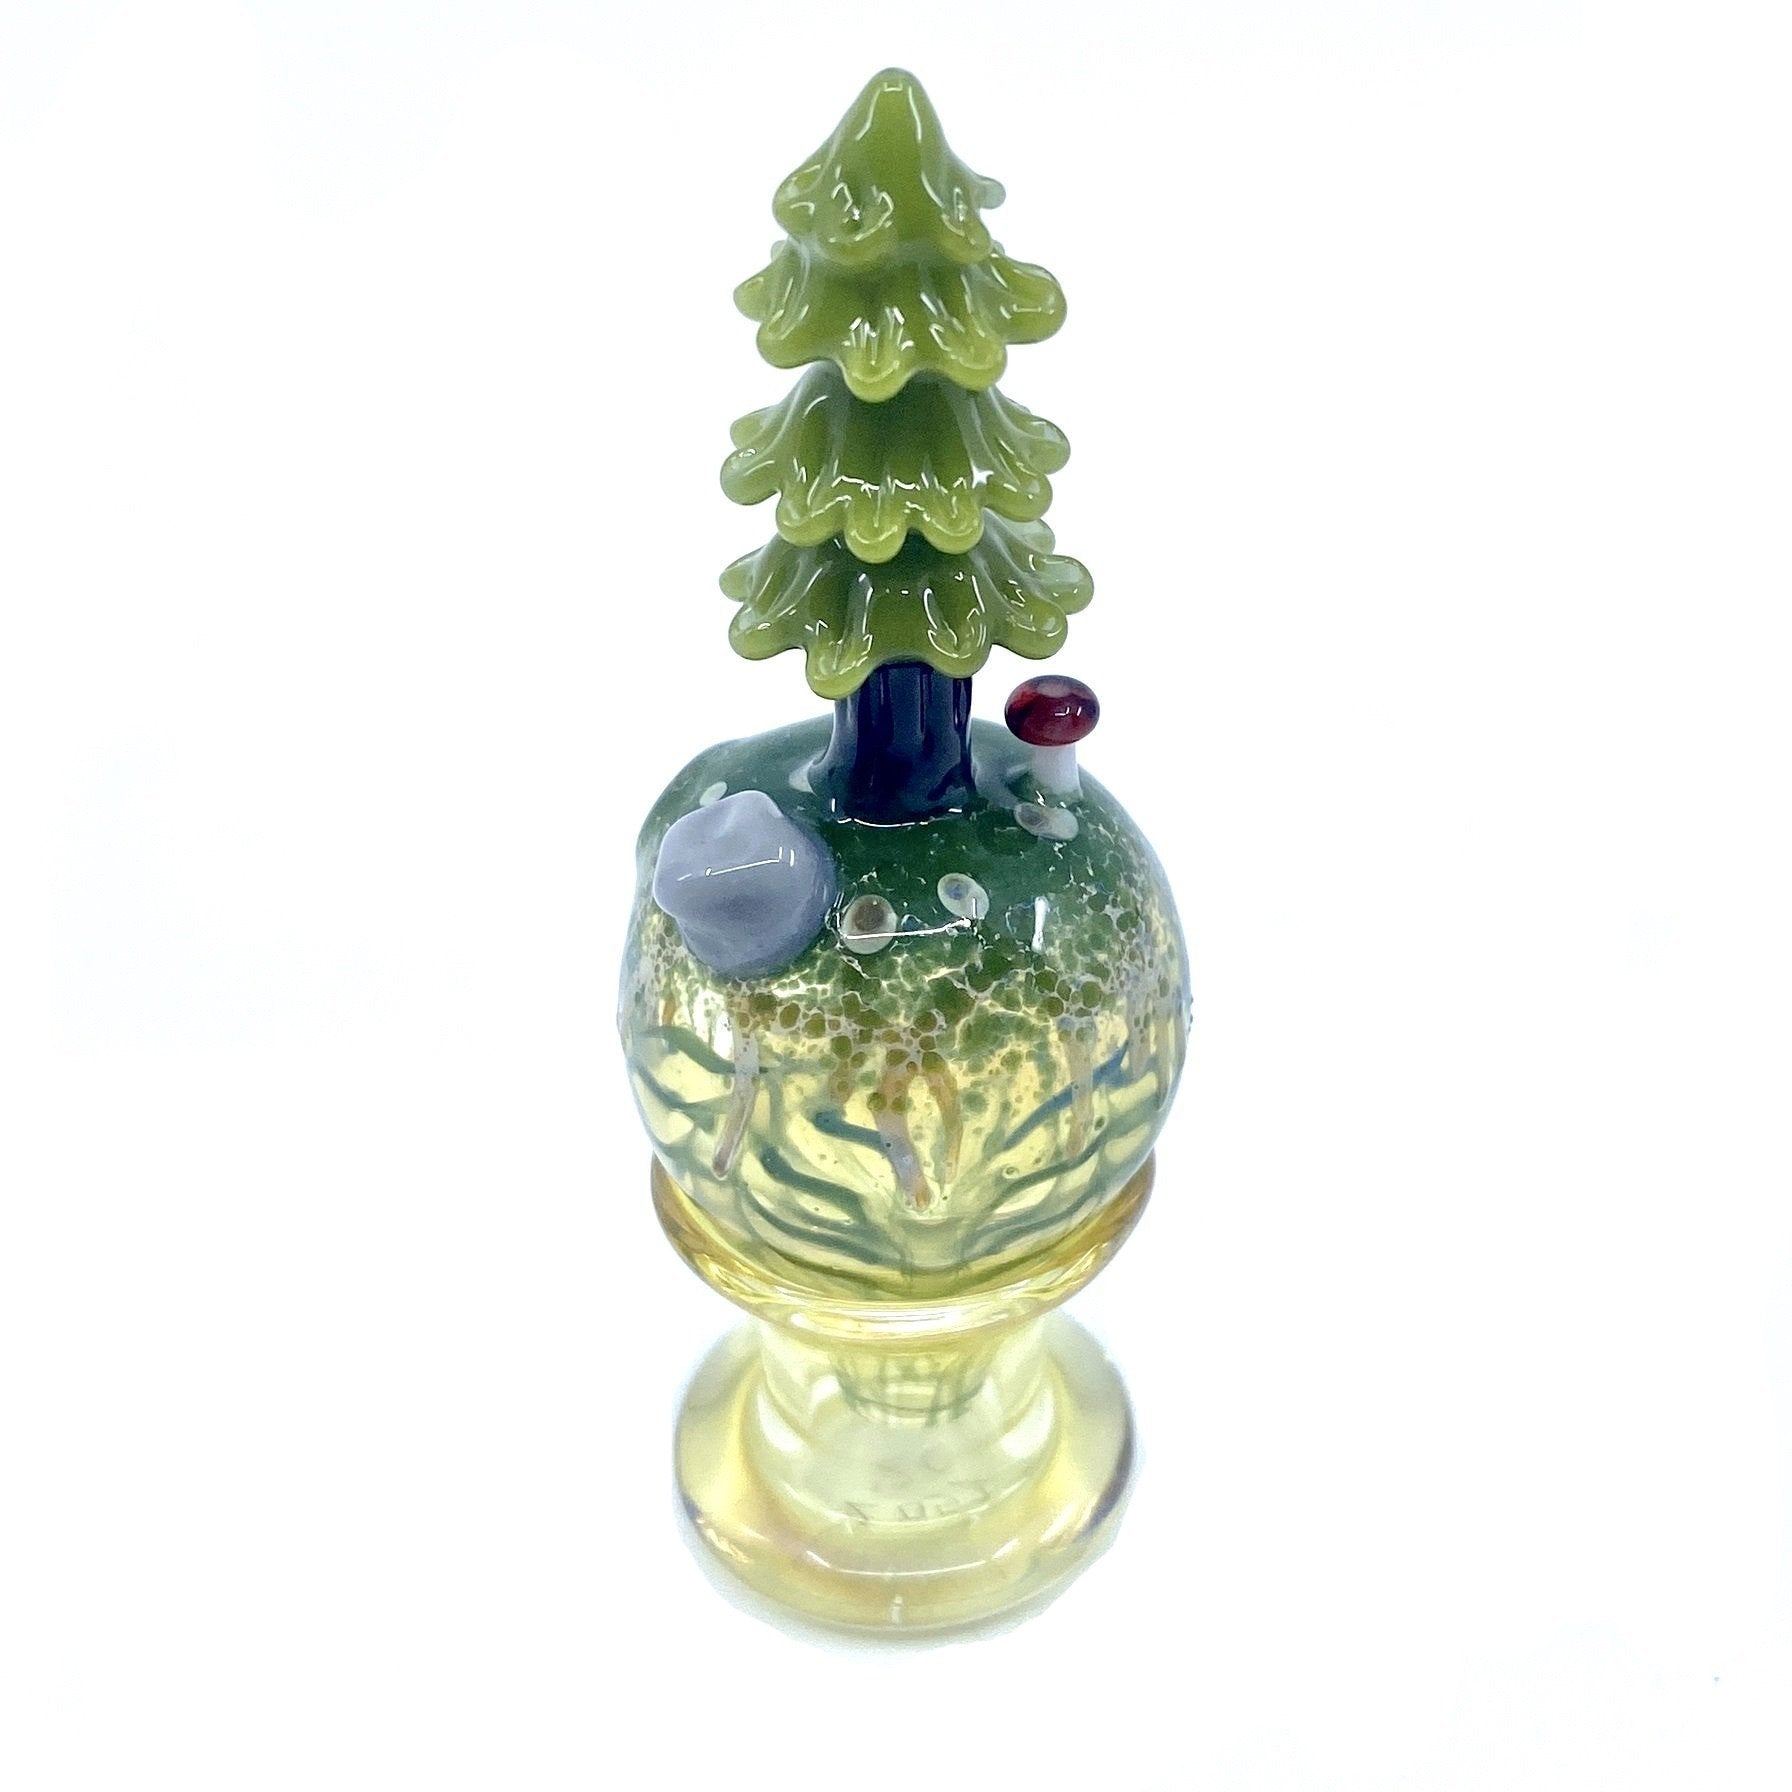 Los1 Glass Forest Trubble Cap